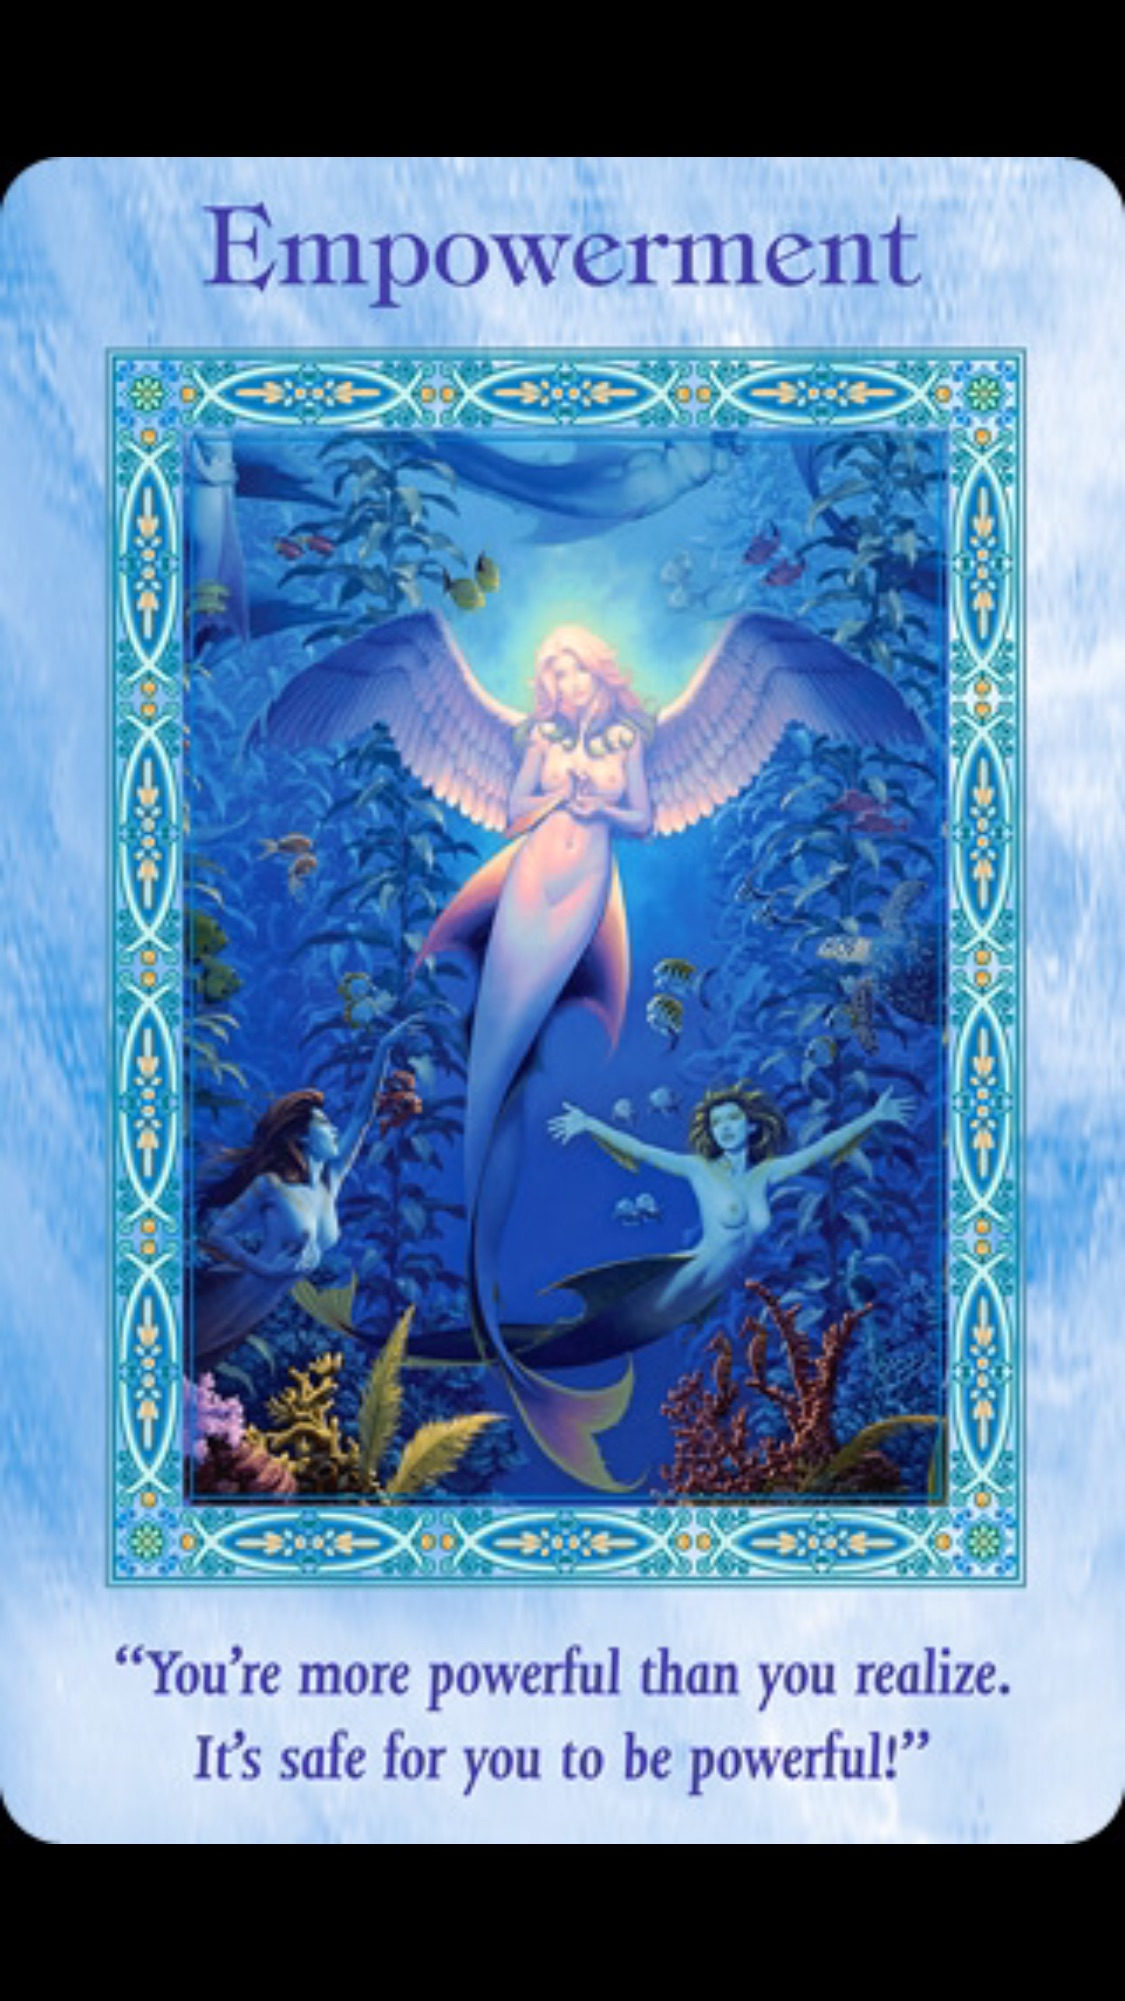 Deck Used: Magical Mermaids and Dolphins